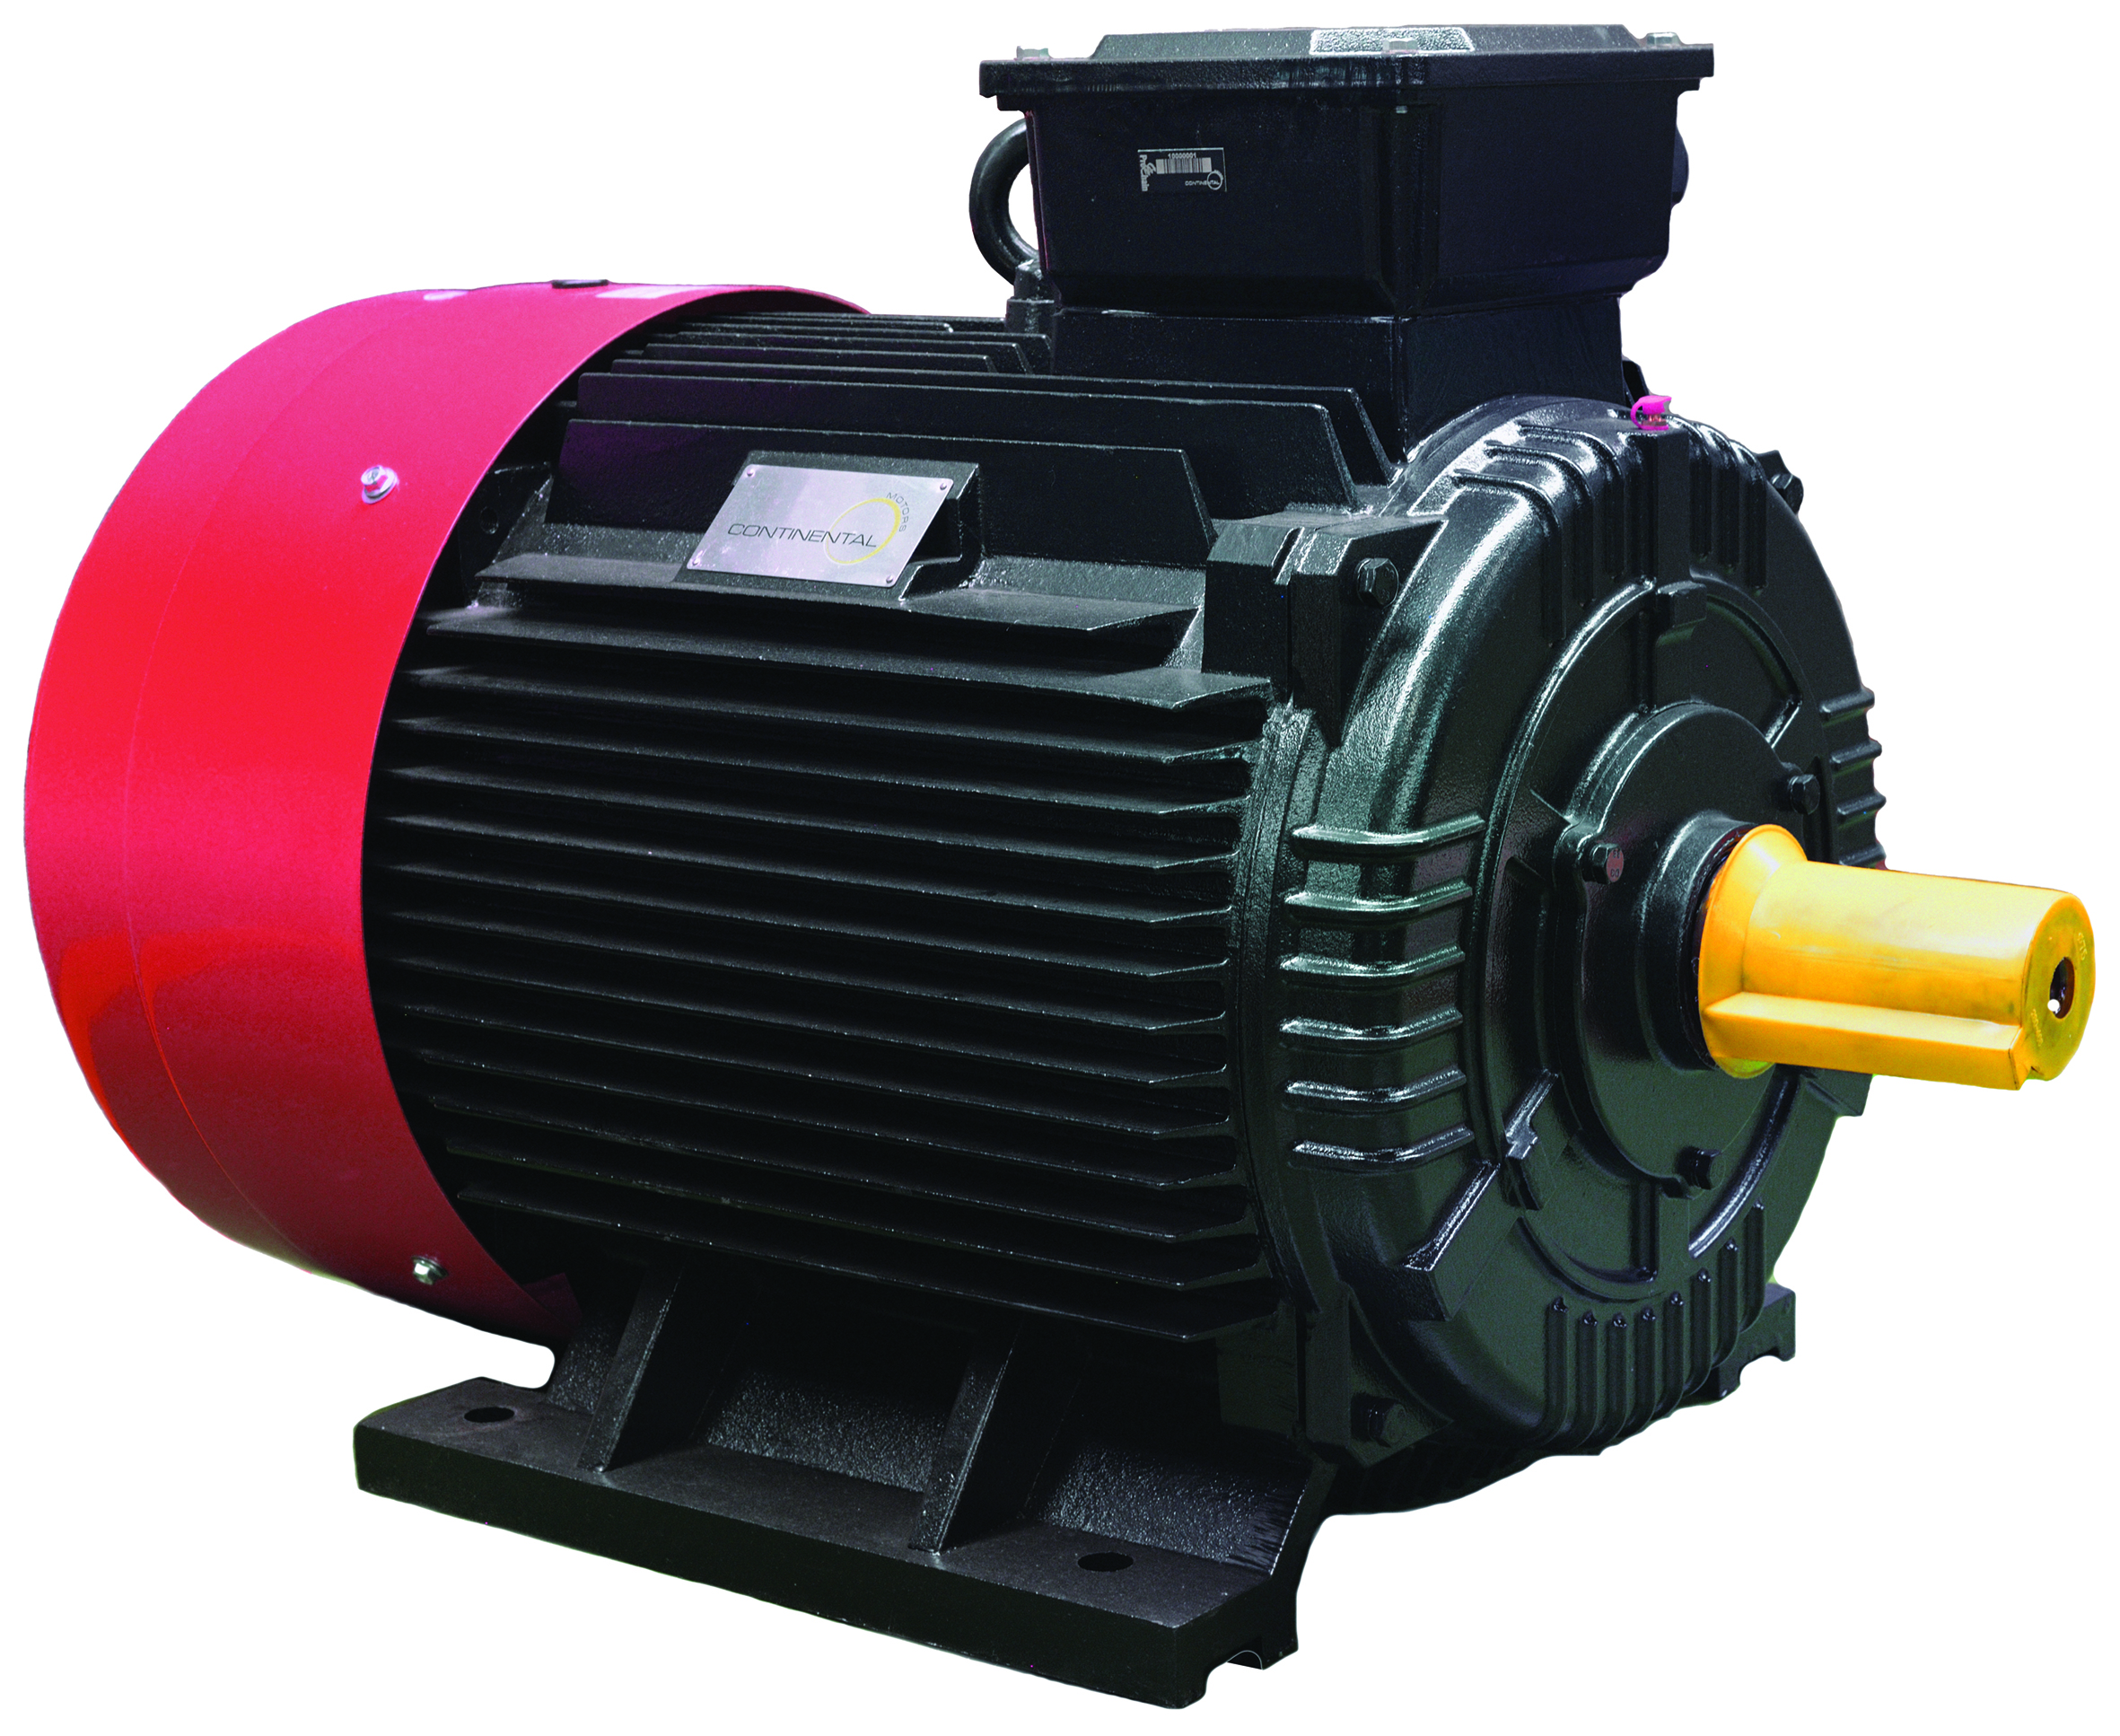 Filter focus introduces electric motors to its extensive Electric motor solutions